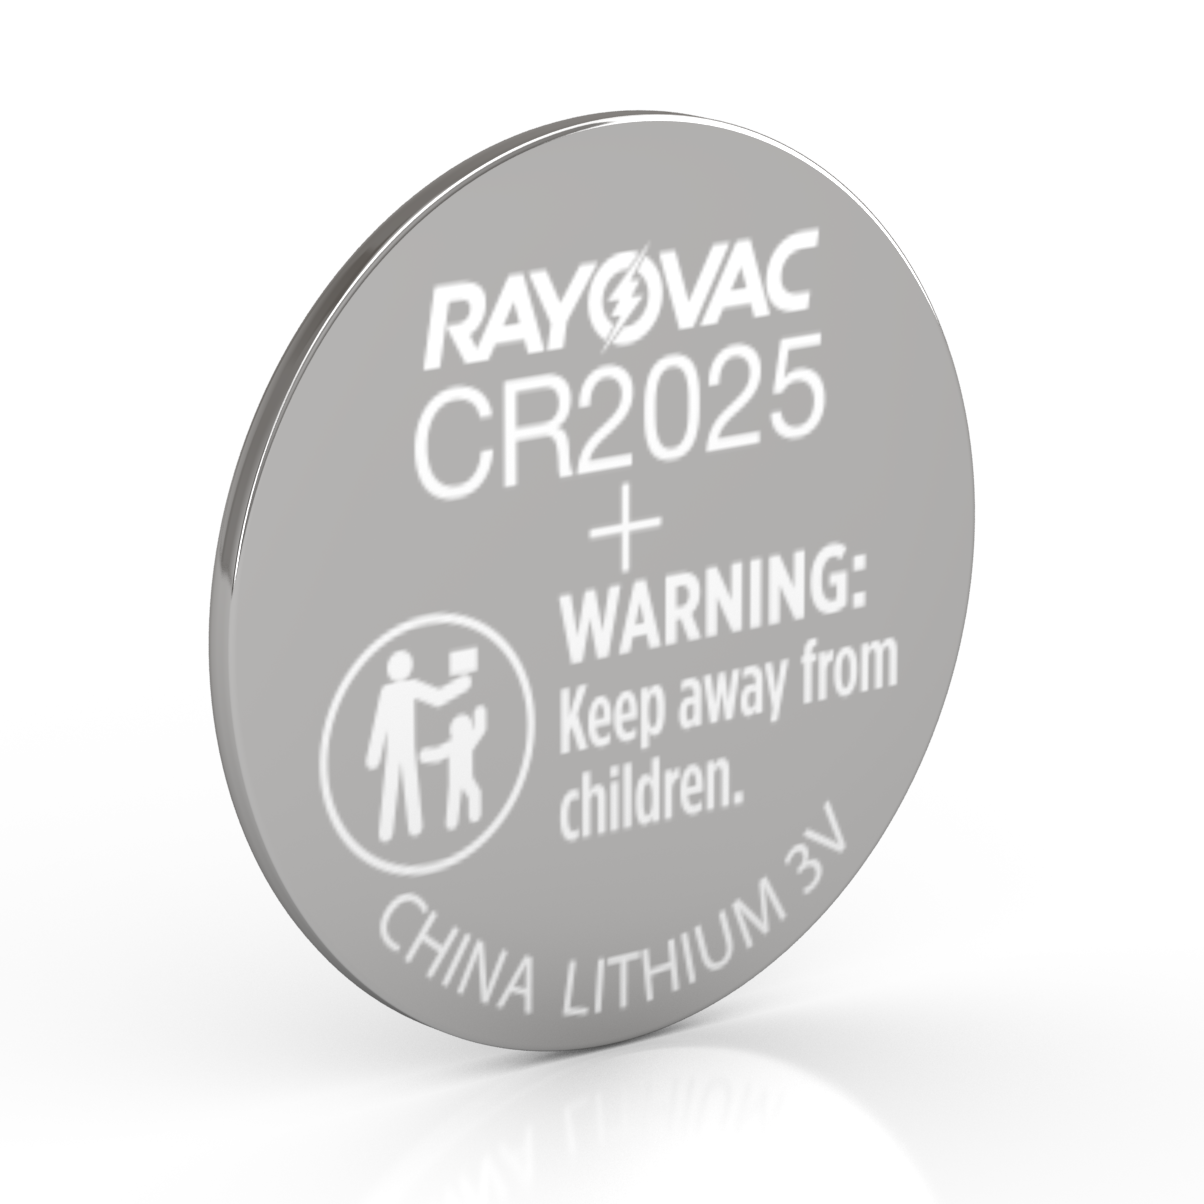 CR2025 Lithium Coin Cell battery